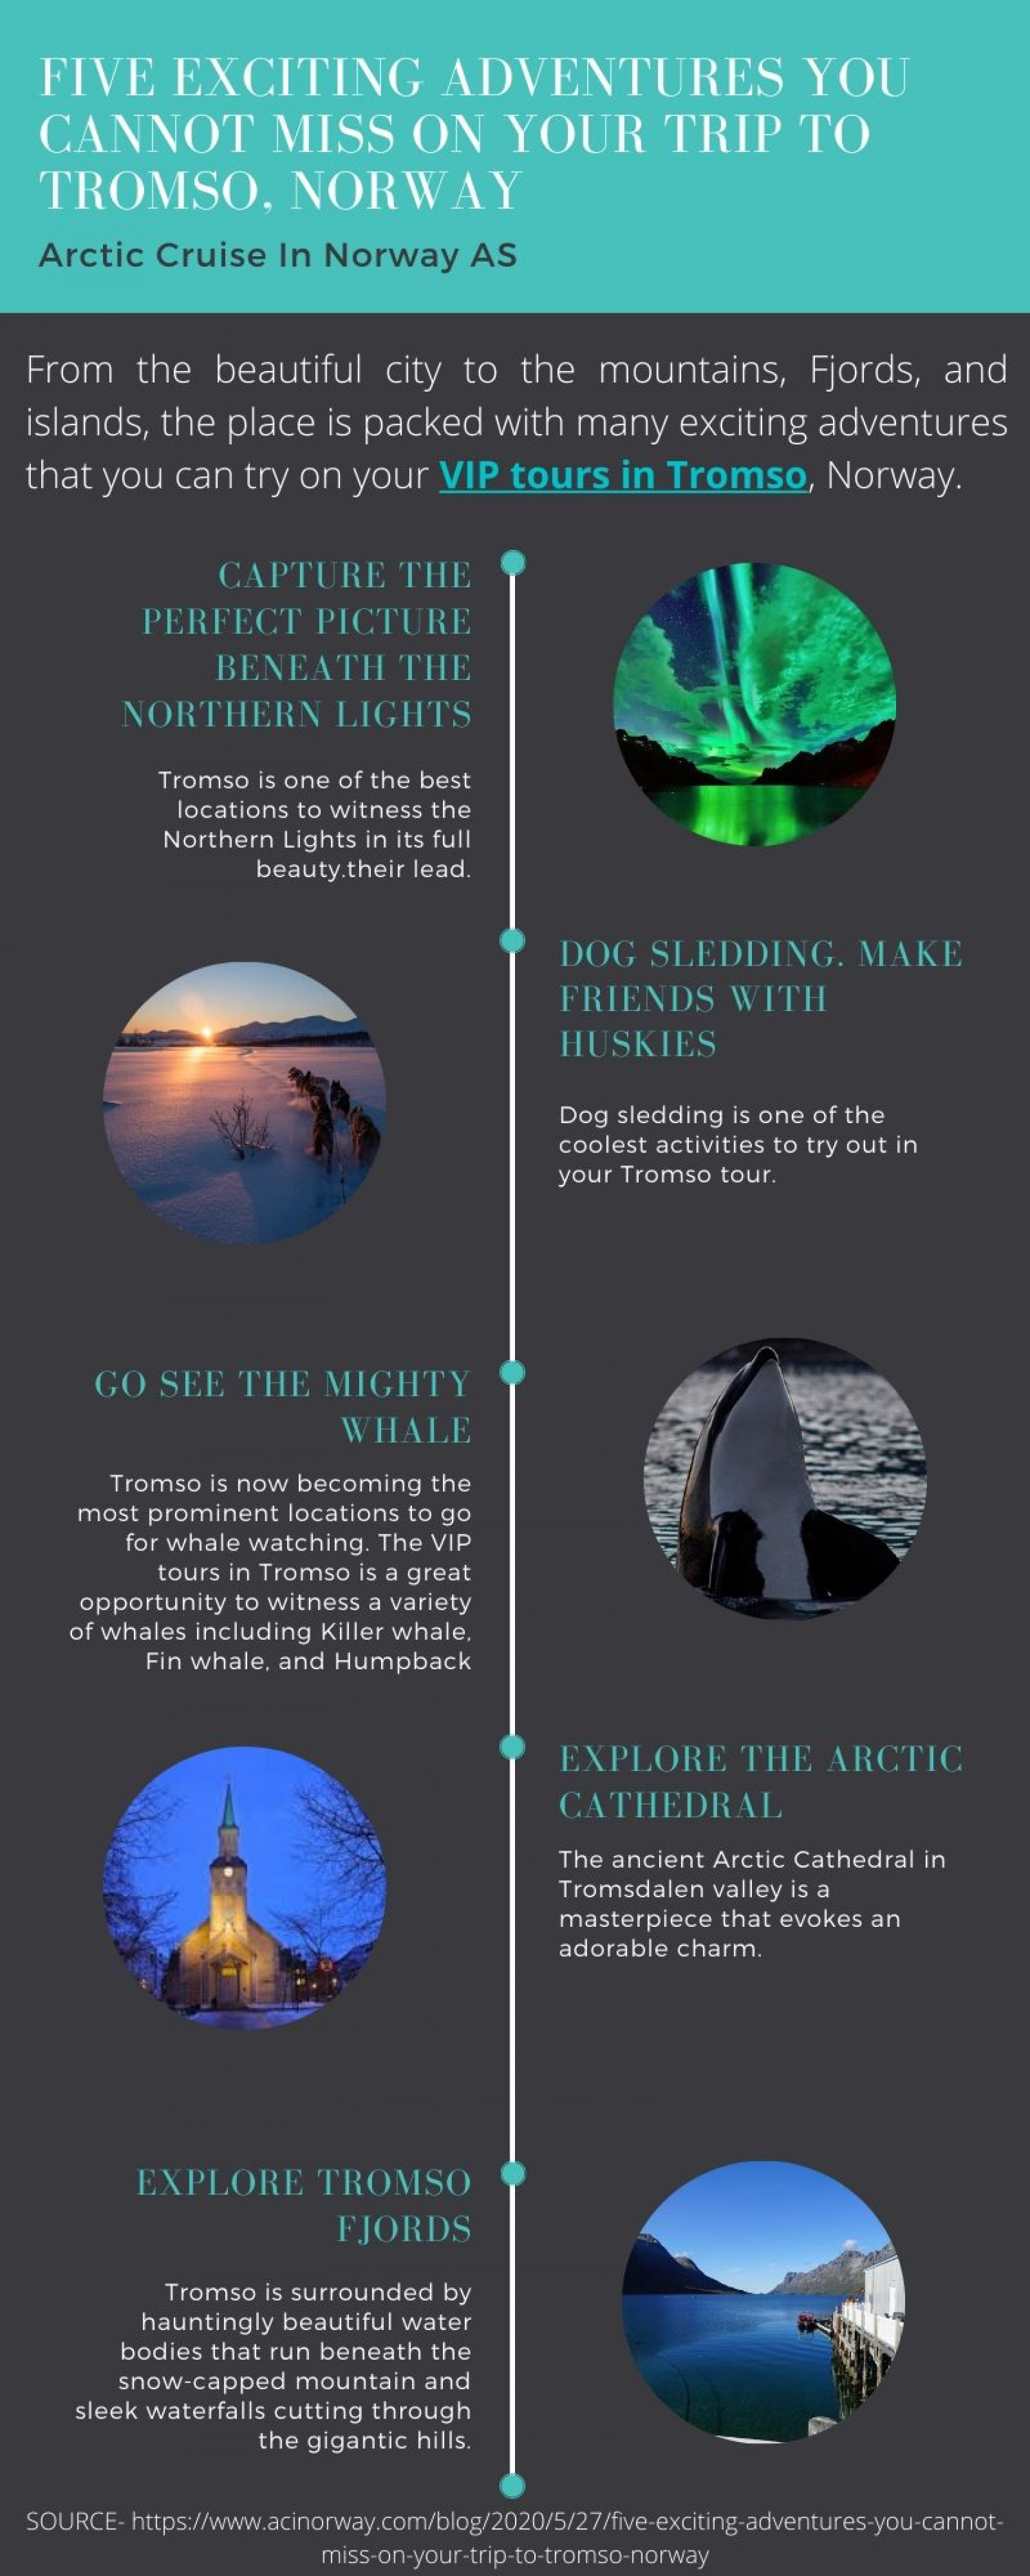 Five Exciting Adventures you cannot Miss on Your Trip to Tromso, Norway Infographic